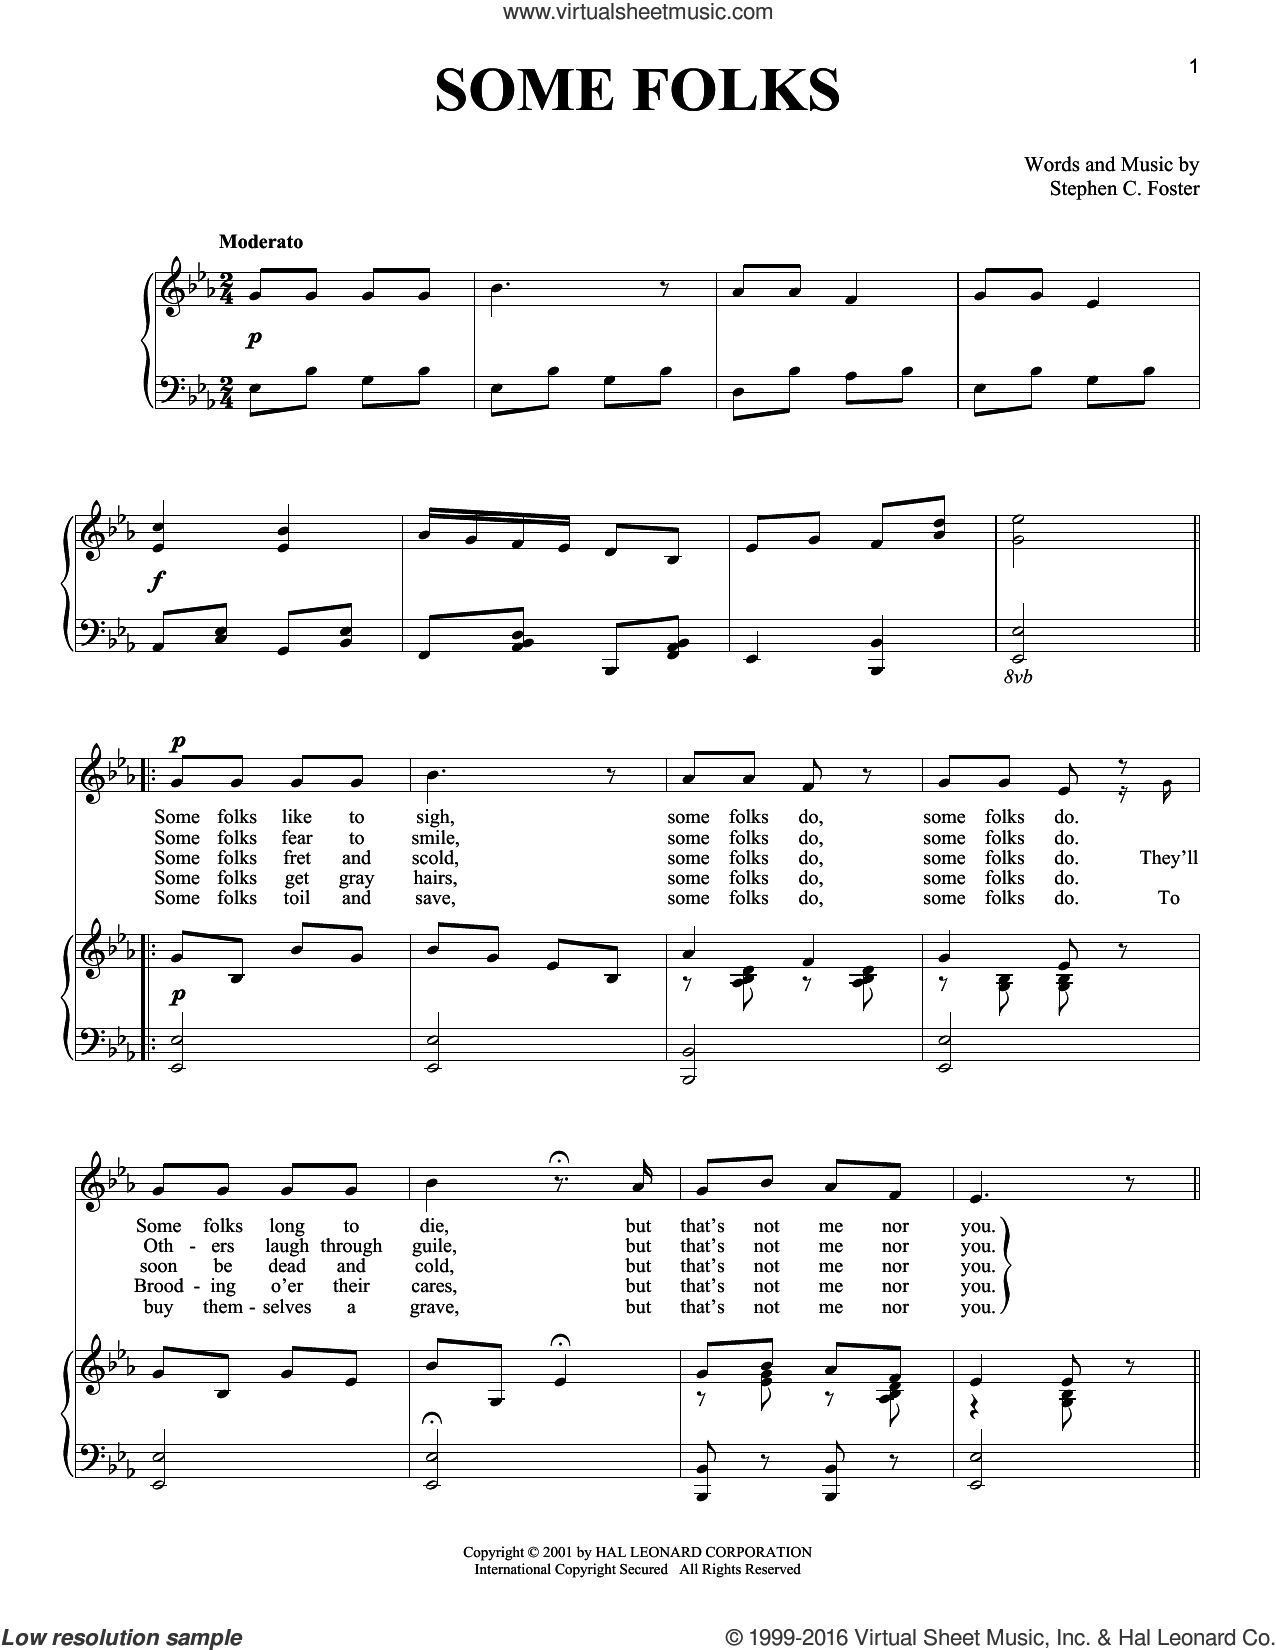 Some Folks sheet music for voice and piano by Stephen Foster. Score Image Preview.